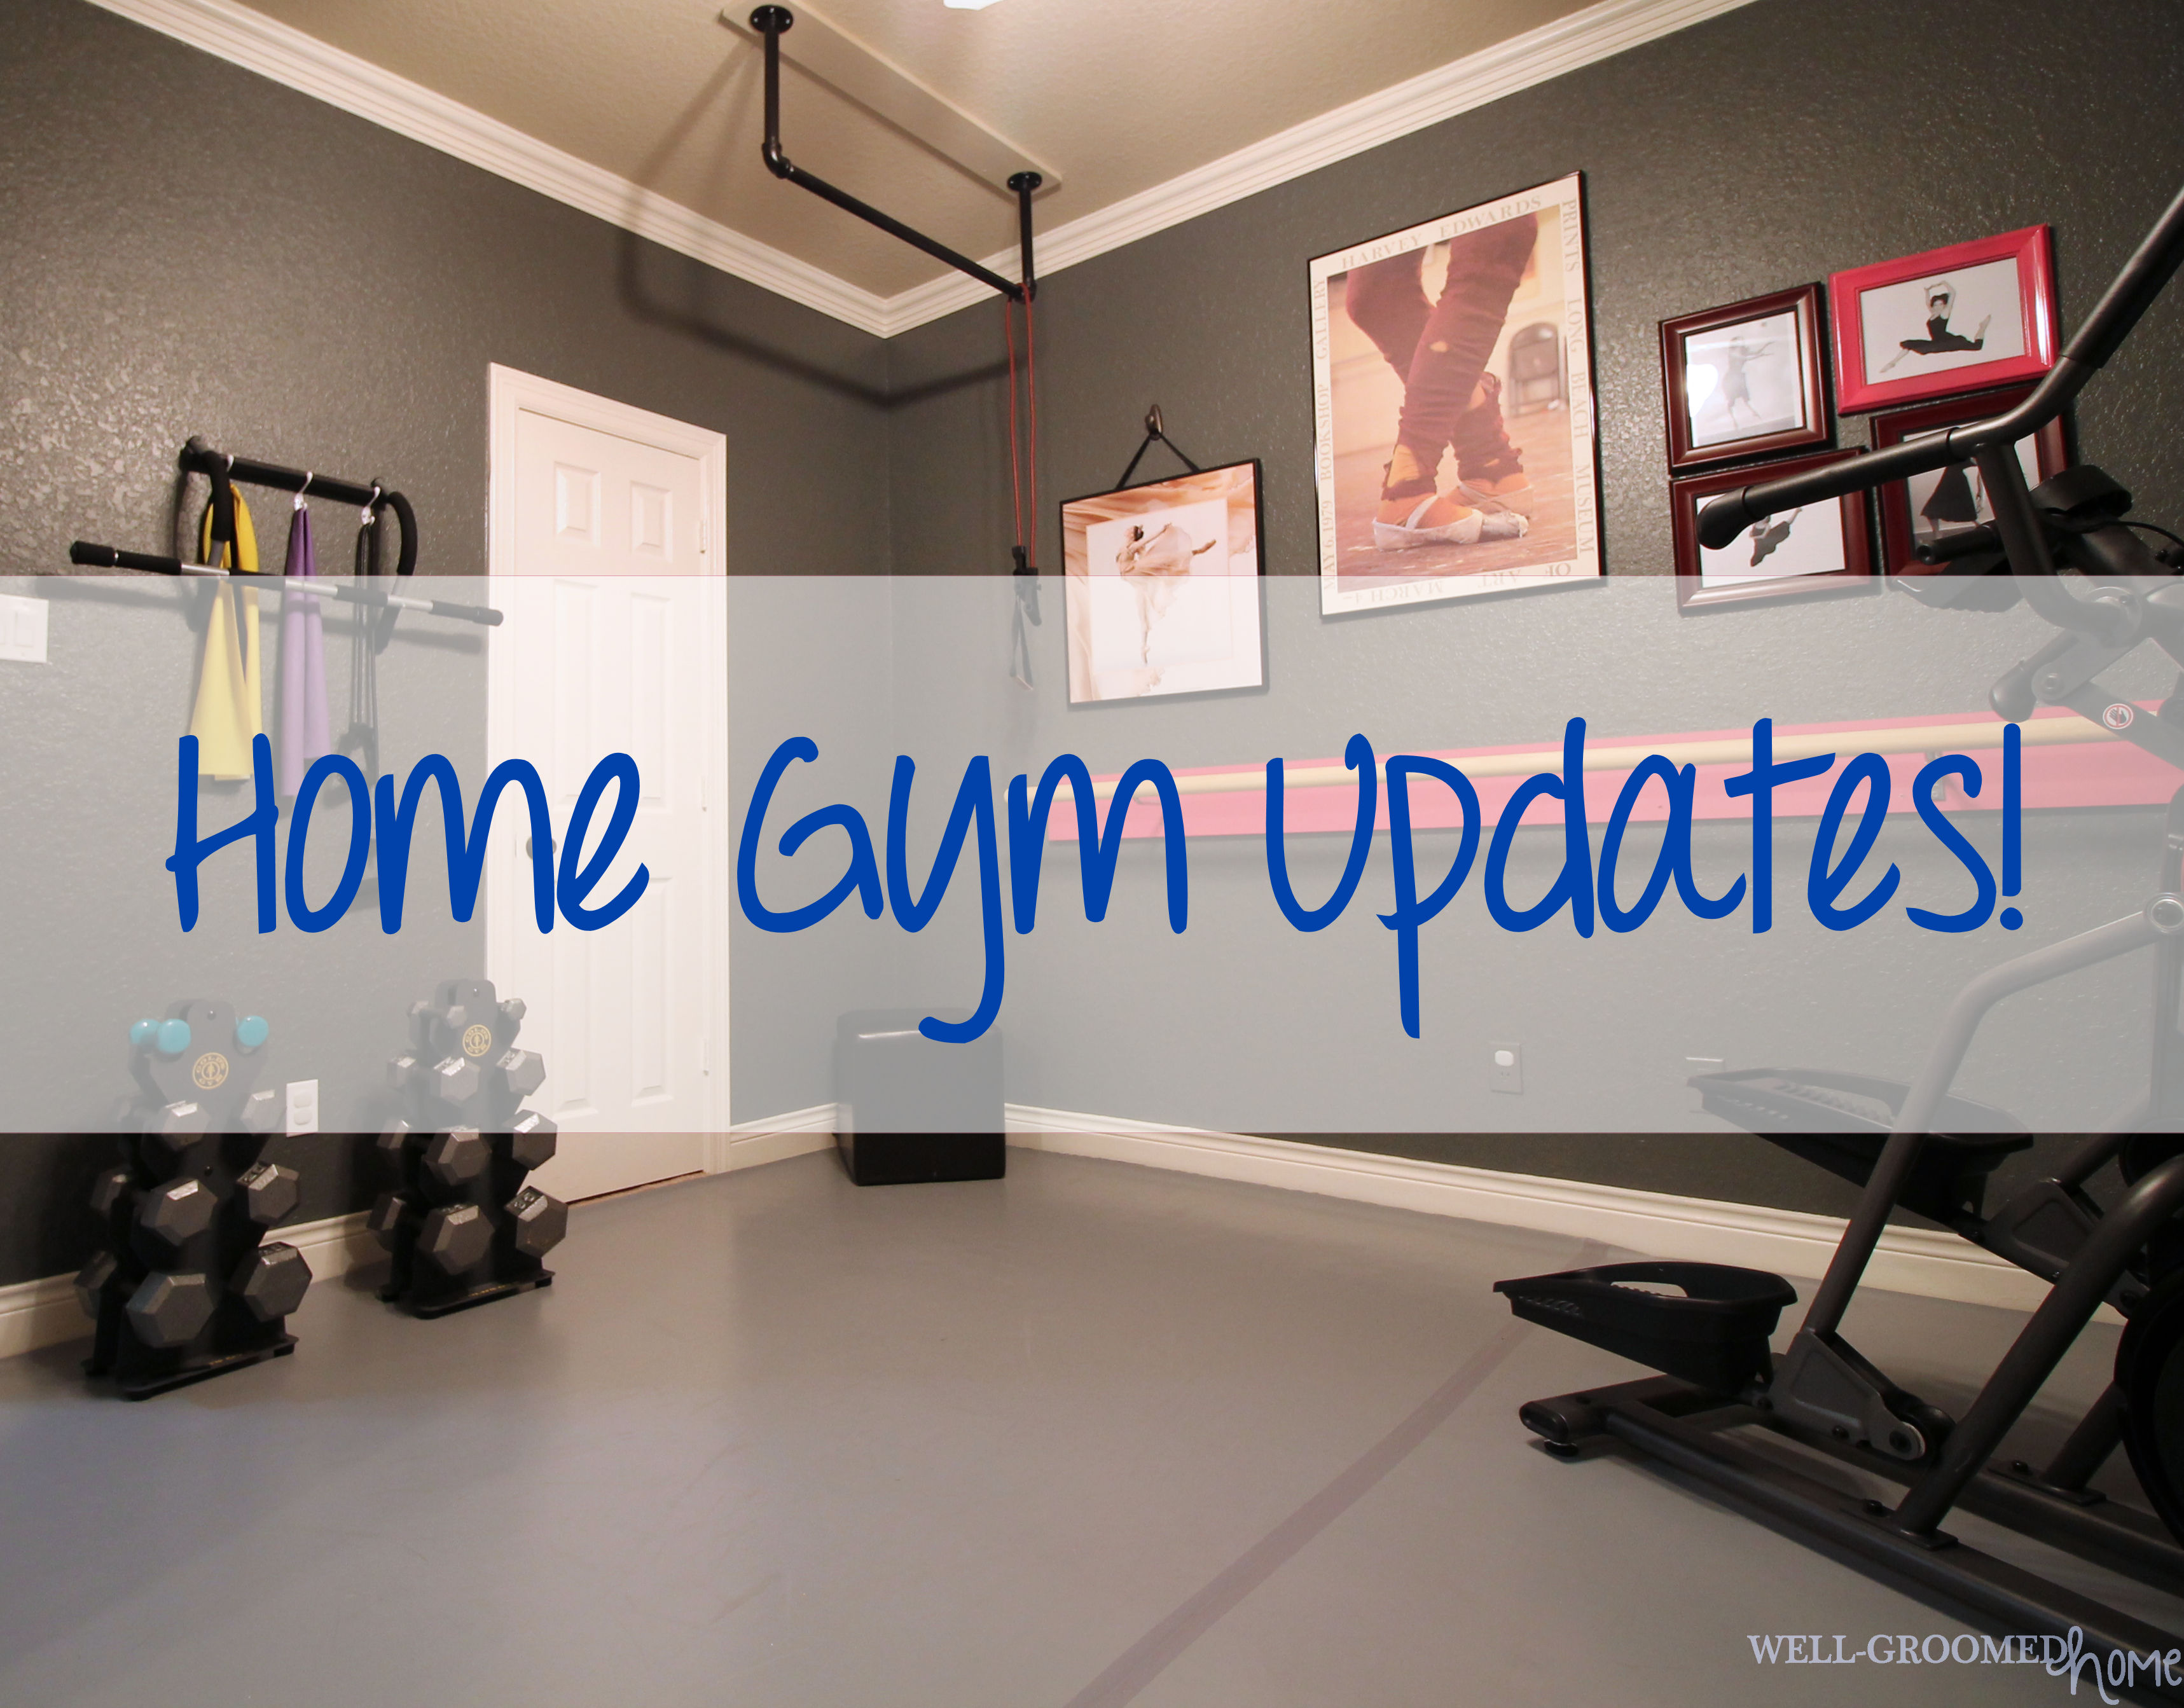 Home gym updates well groomed home